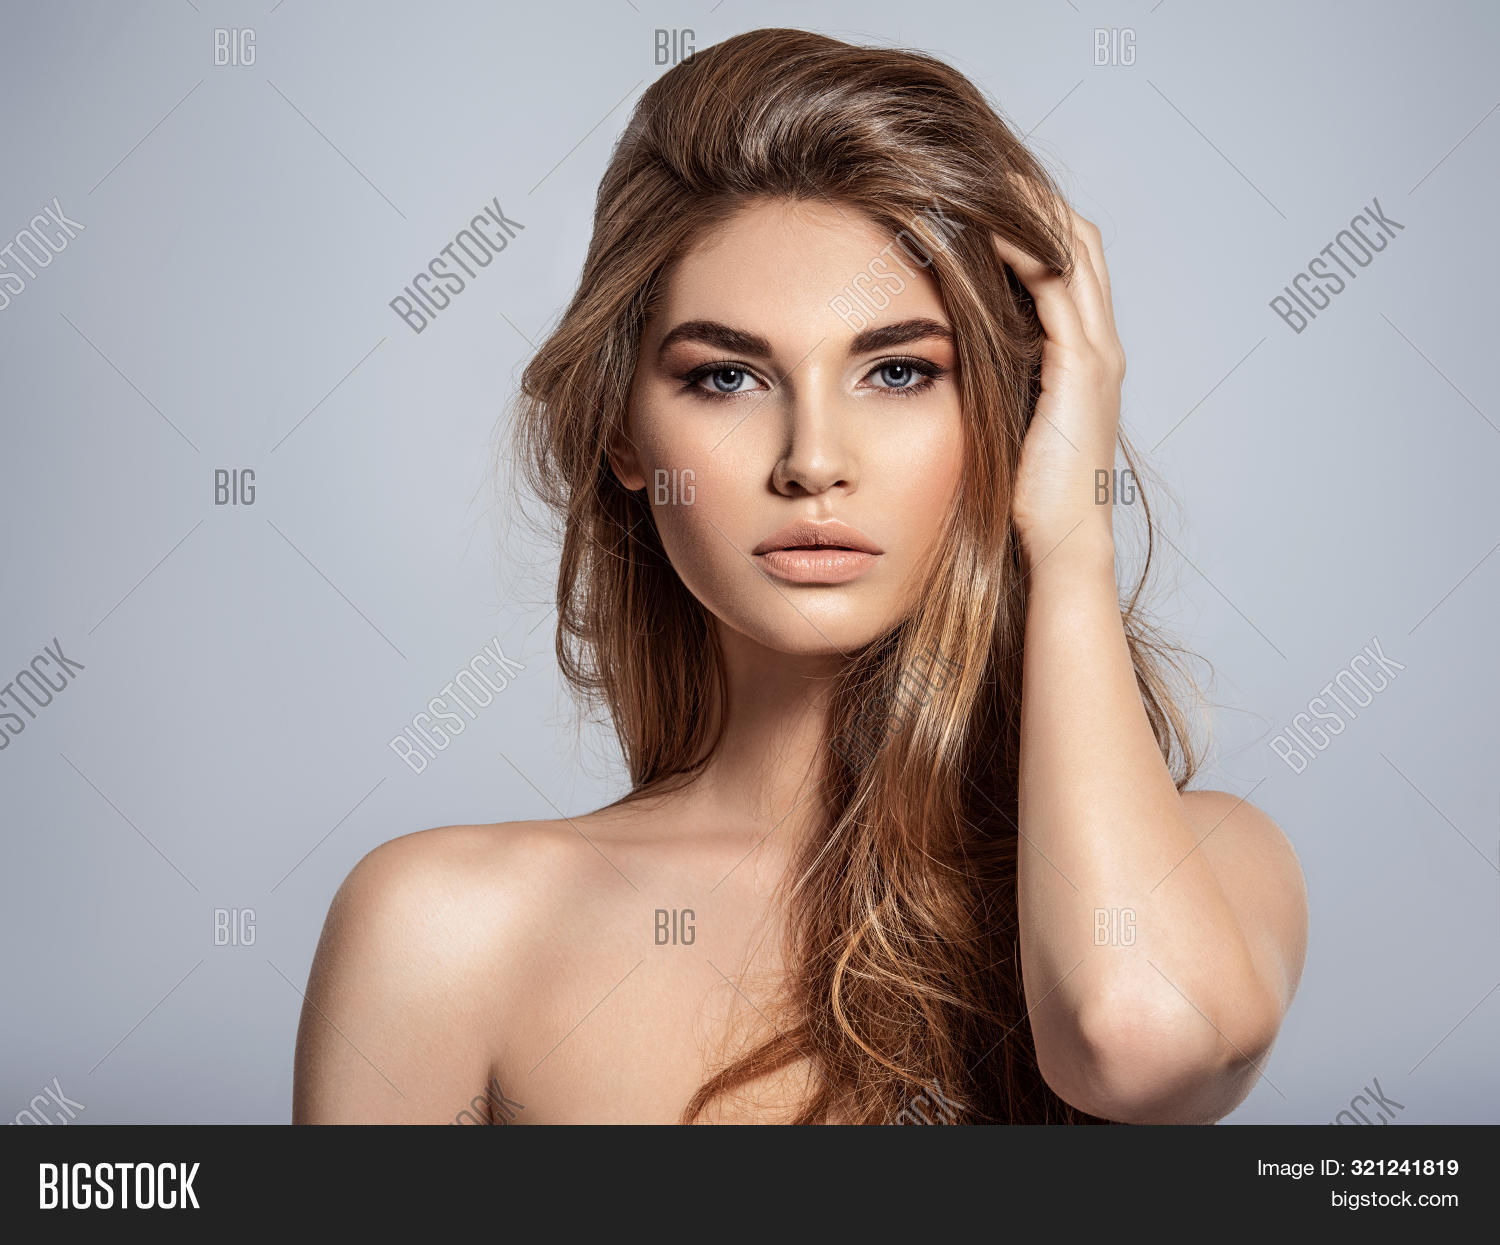 Woman with beauty long brown hair and natural makeup.  Beautiful face of an attractive  model with blue eyes. Closeup portrait of a caucasian female. Attractive fashion model.